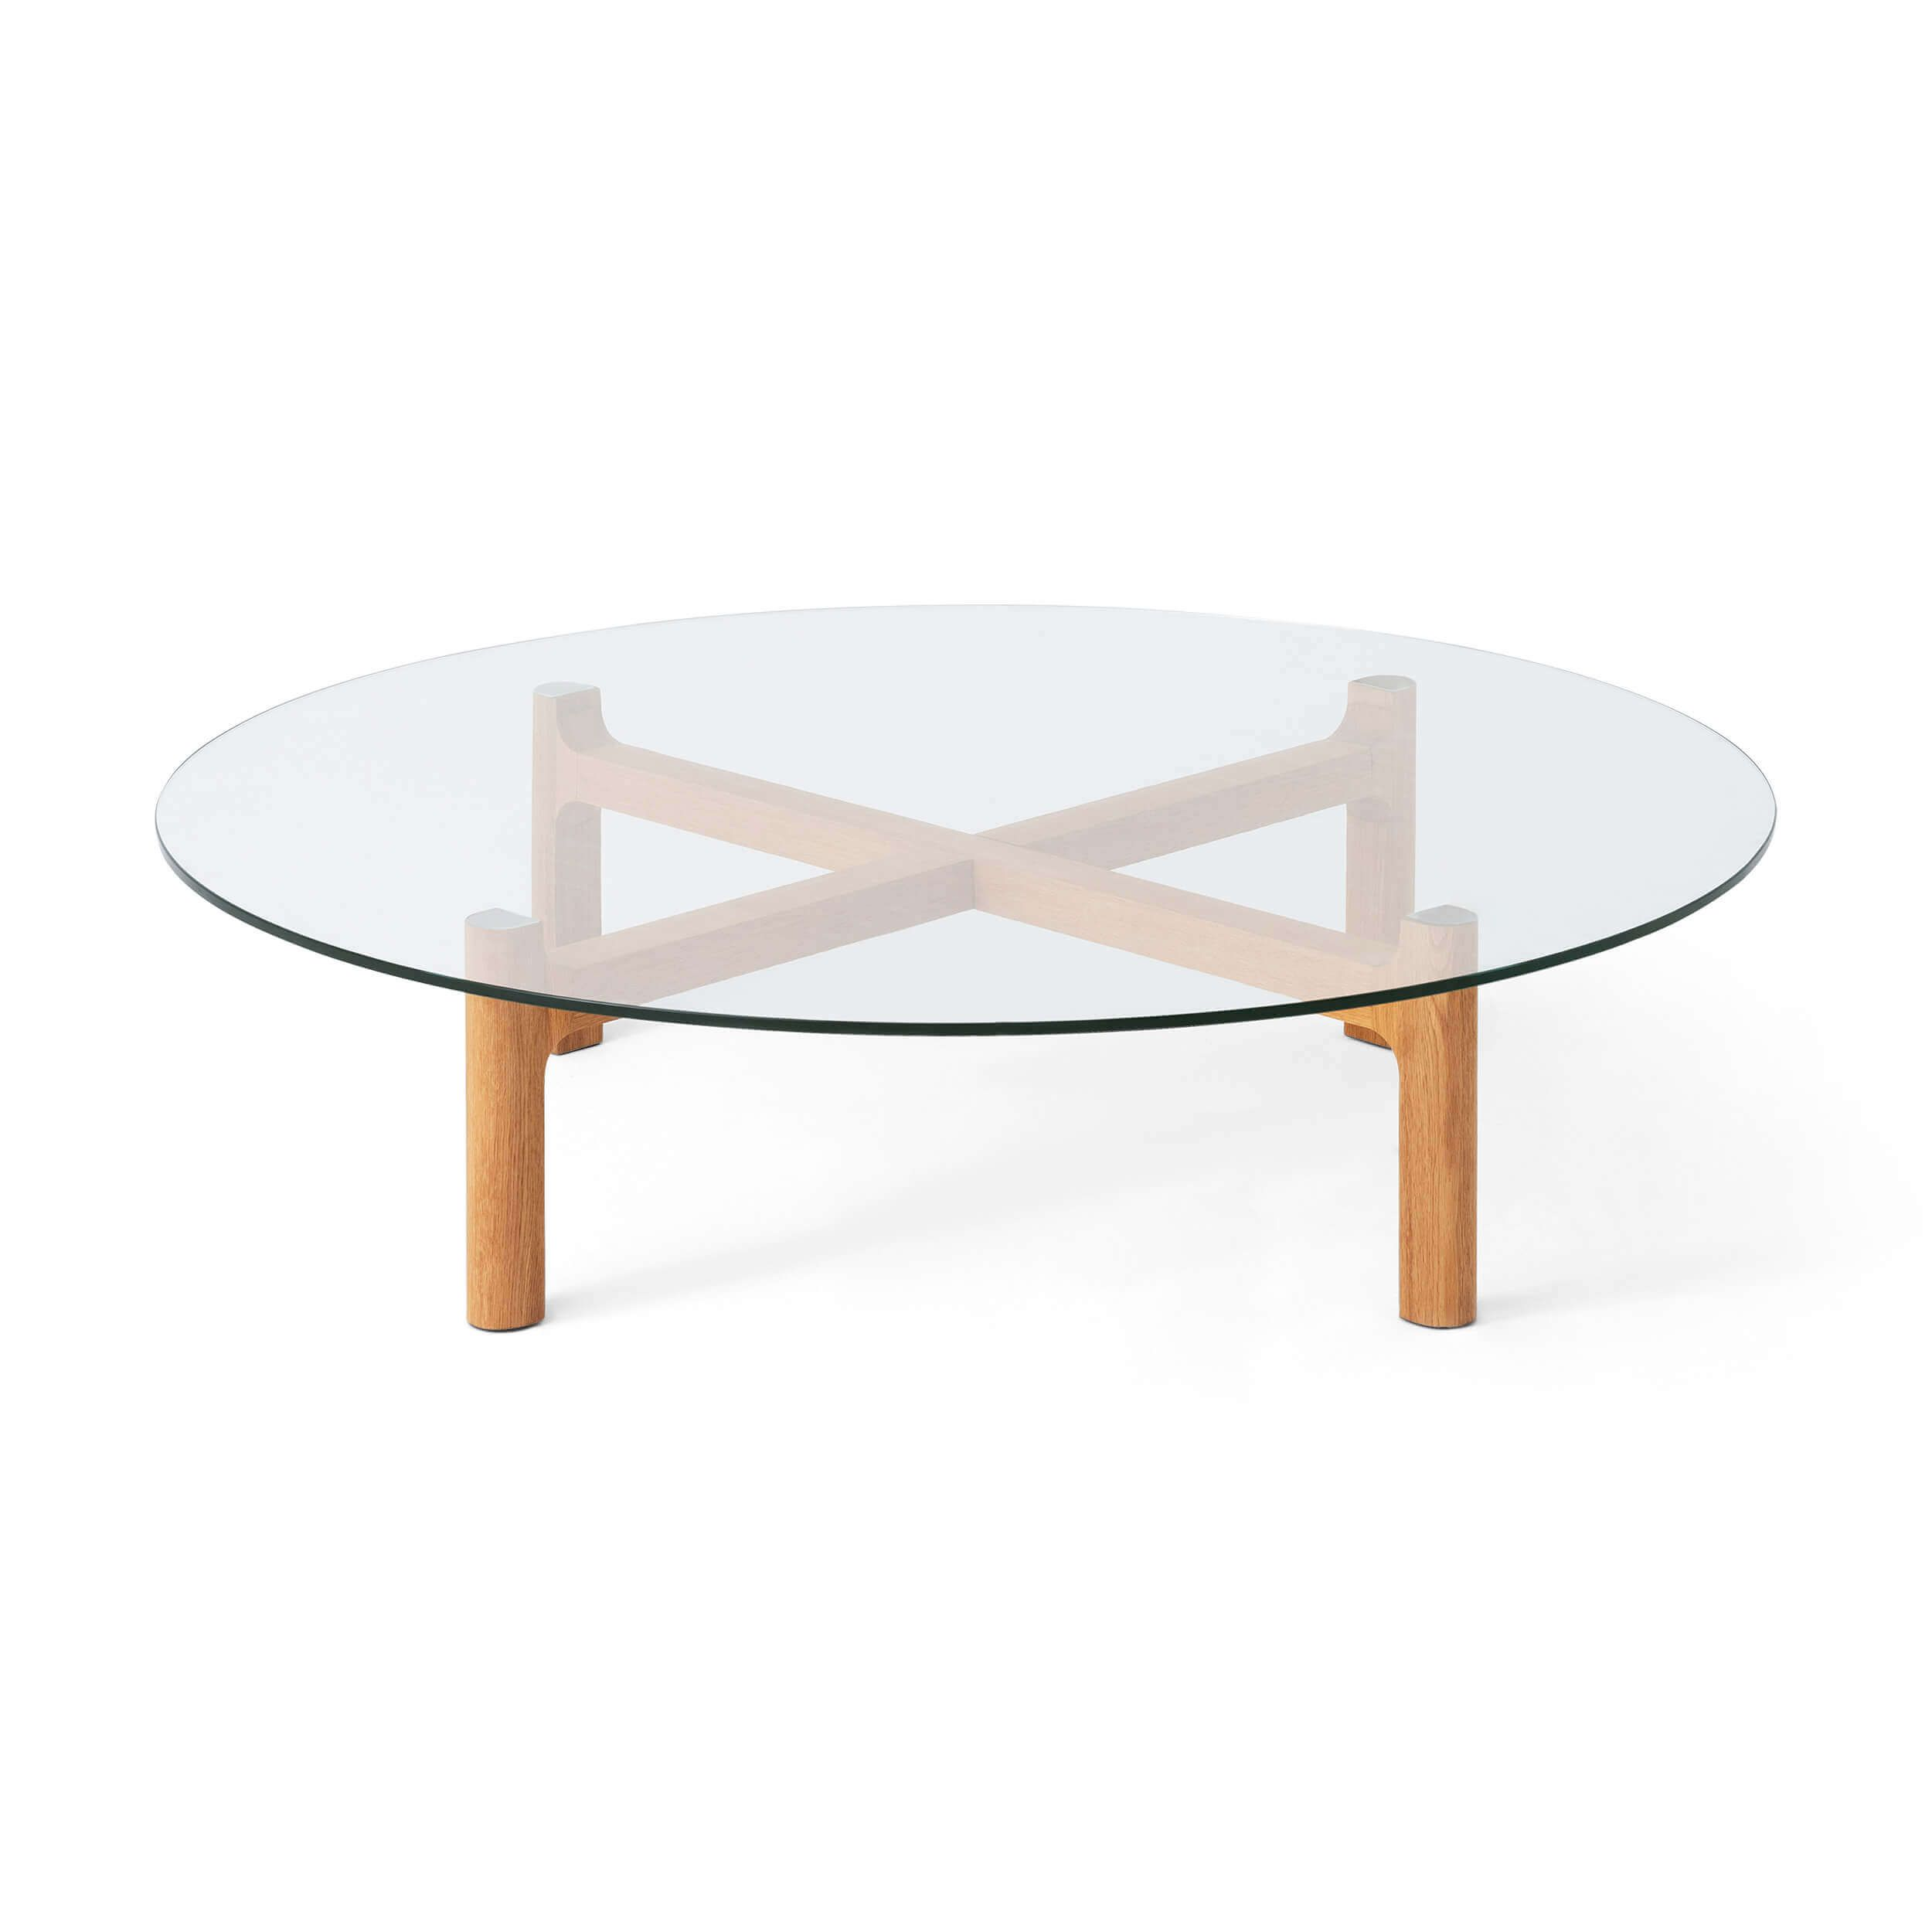 Modern Coffee Tables Square Rectangle Oval Tops Eq3 Eq3 In